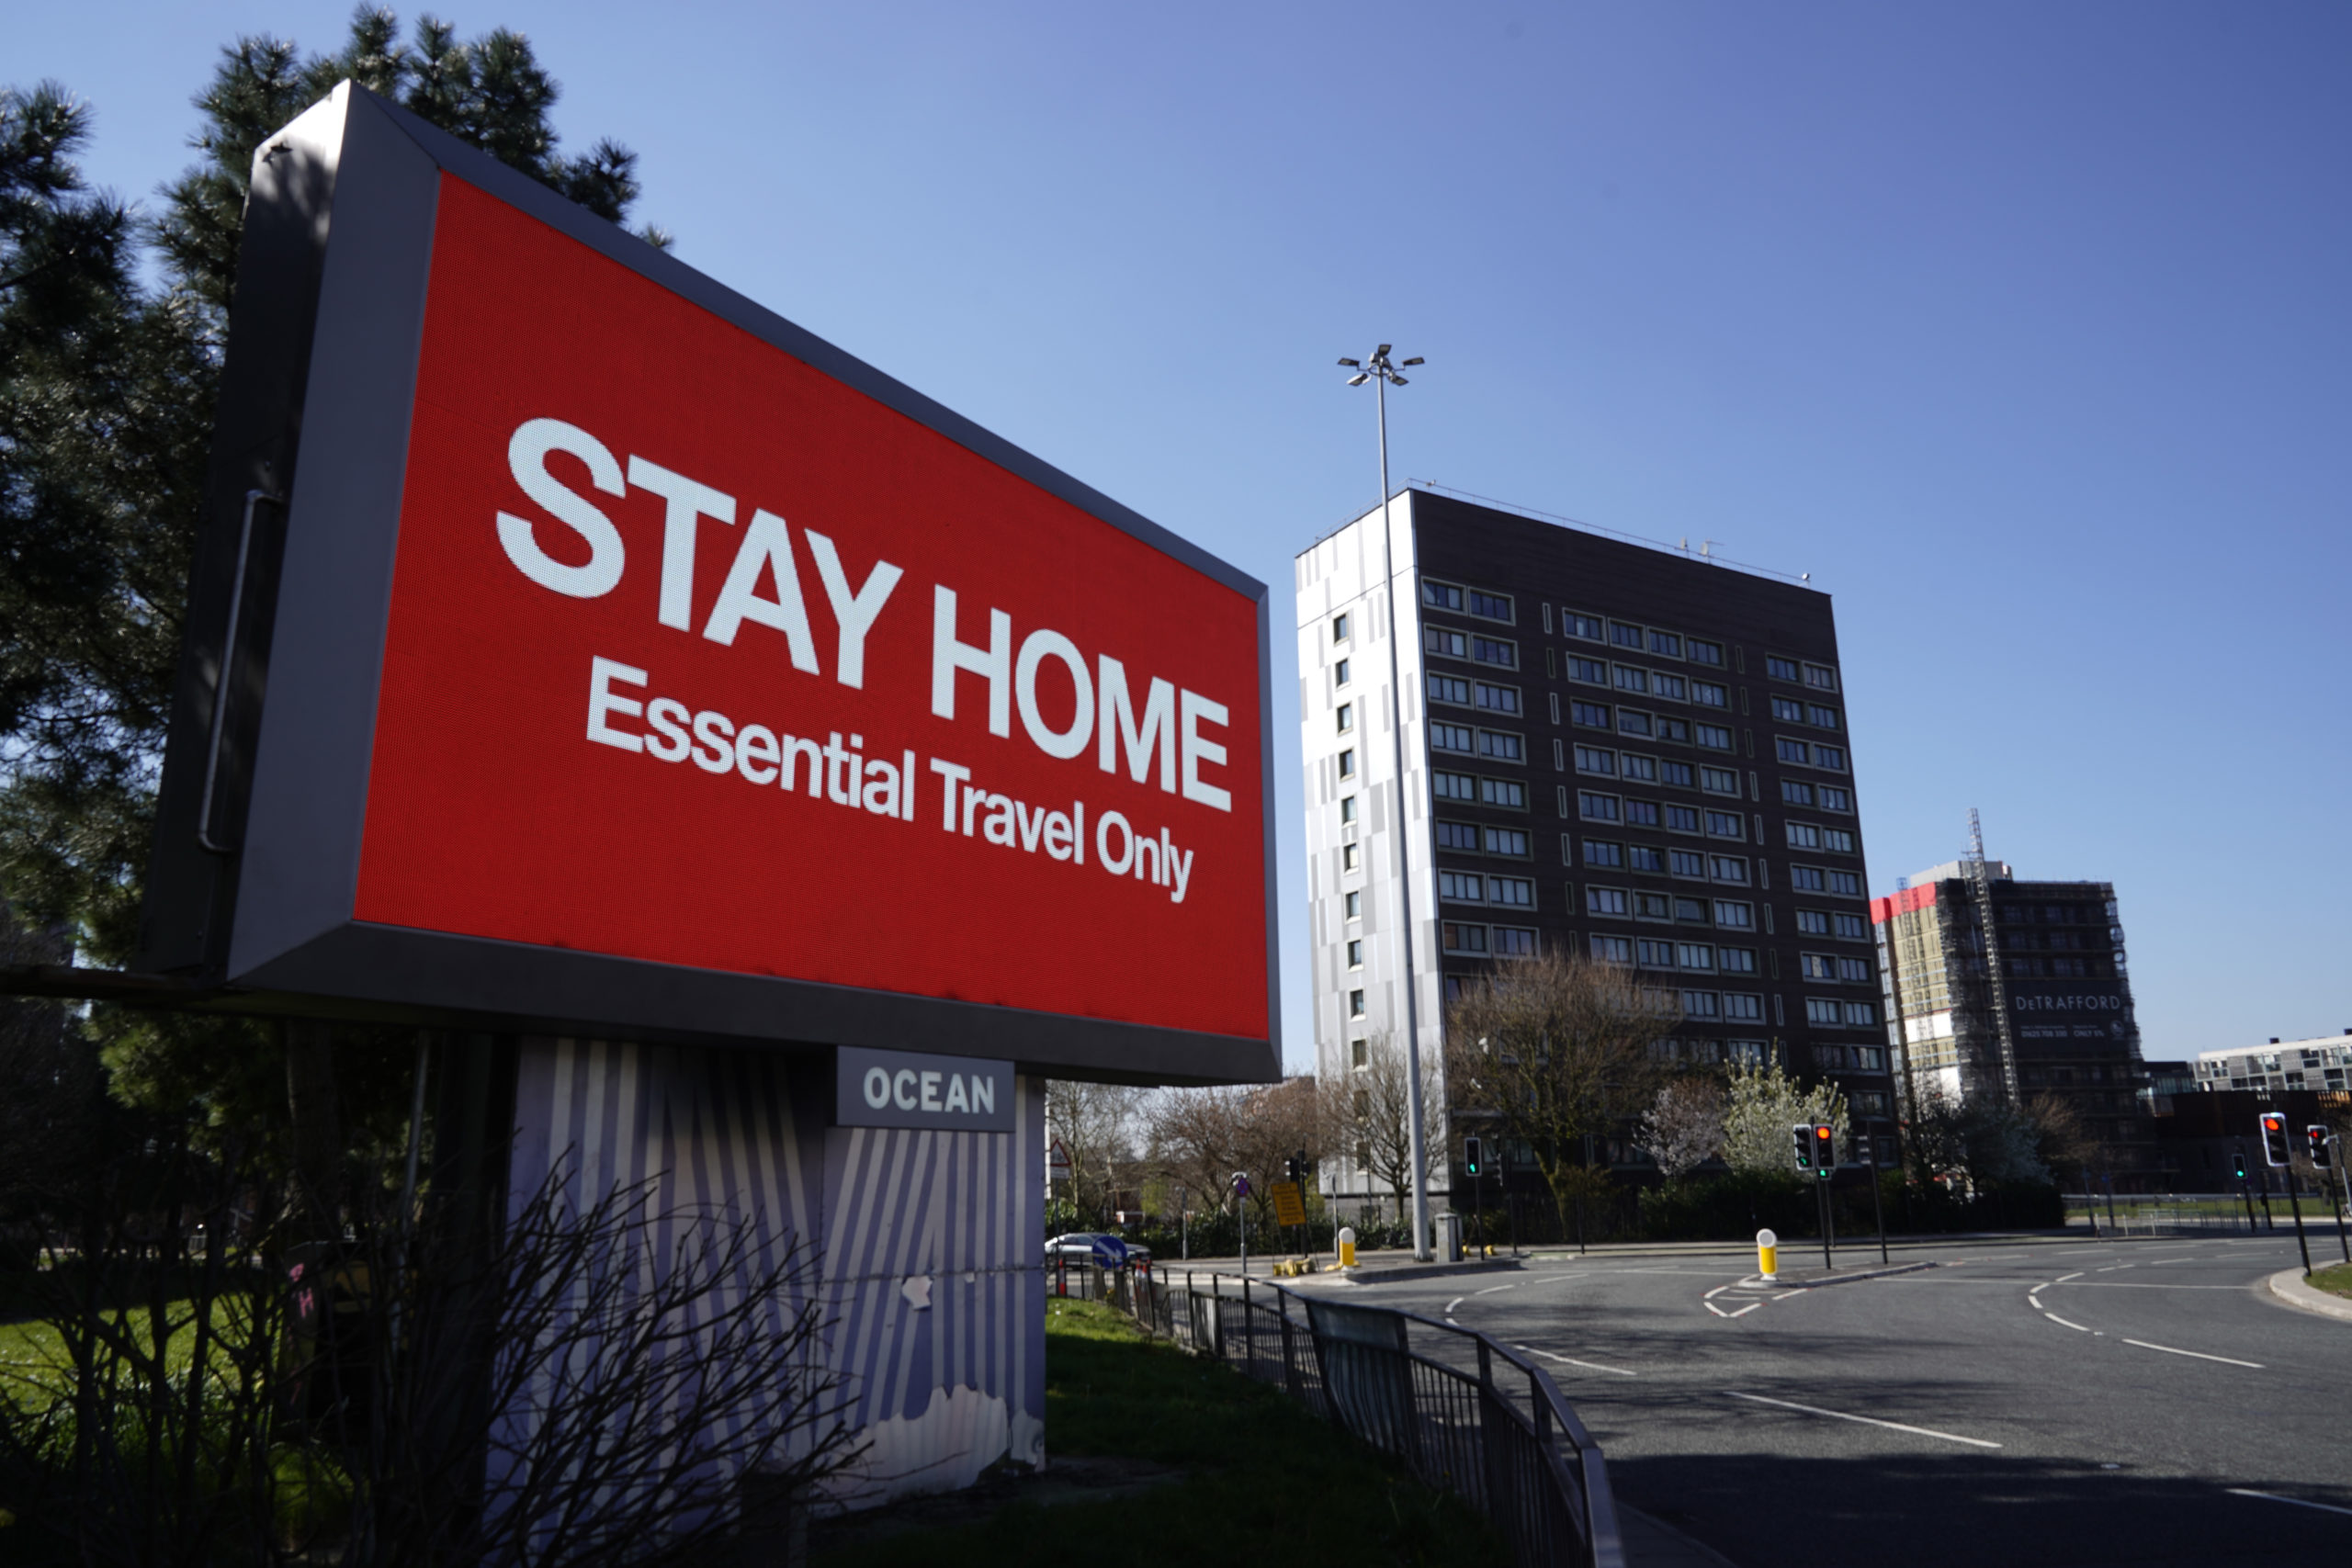 MANCHESTER, - MARCH 26: A giant television over the A57 Motorway urges people to stay home on March 26, 2020 in Manchester, England. British Prime Minister, Boris Johnson, announced strict lockdown measures urging people to stay at home and only leave the house for basic food shopping, exercise once a day and essential travel to and from work. The Coronavirus (COVID-19) pandemic has spread to at least 182 countries, claiming over 10,000 lives and infecting hundreds of thousands more. (Photo by Christopher Furlong/Getty Images)